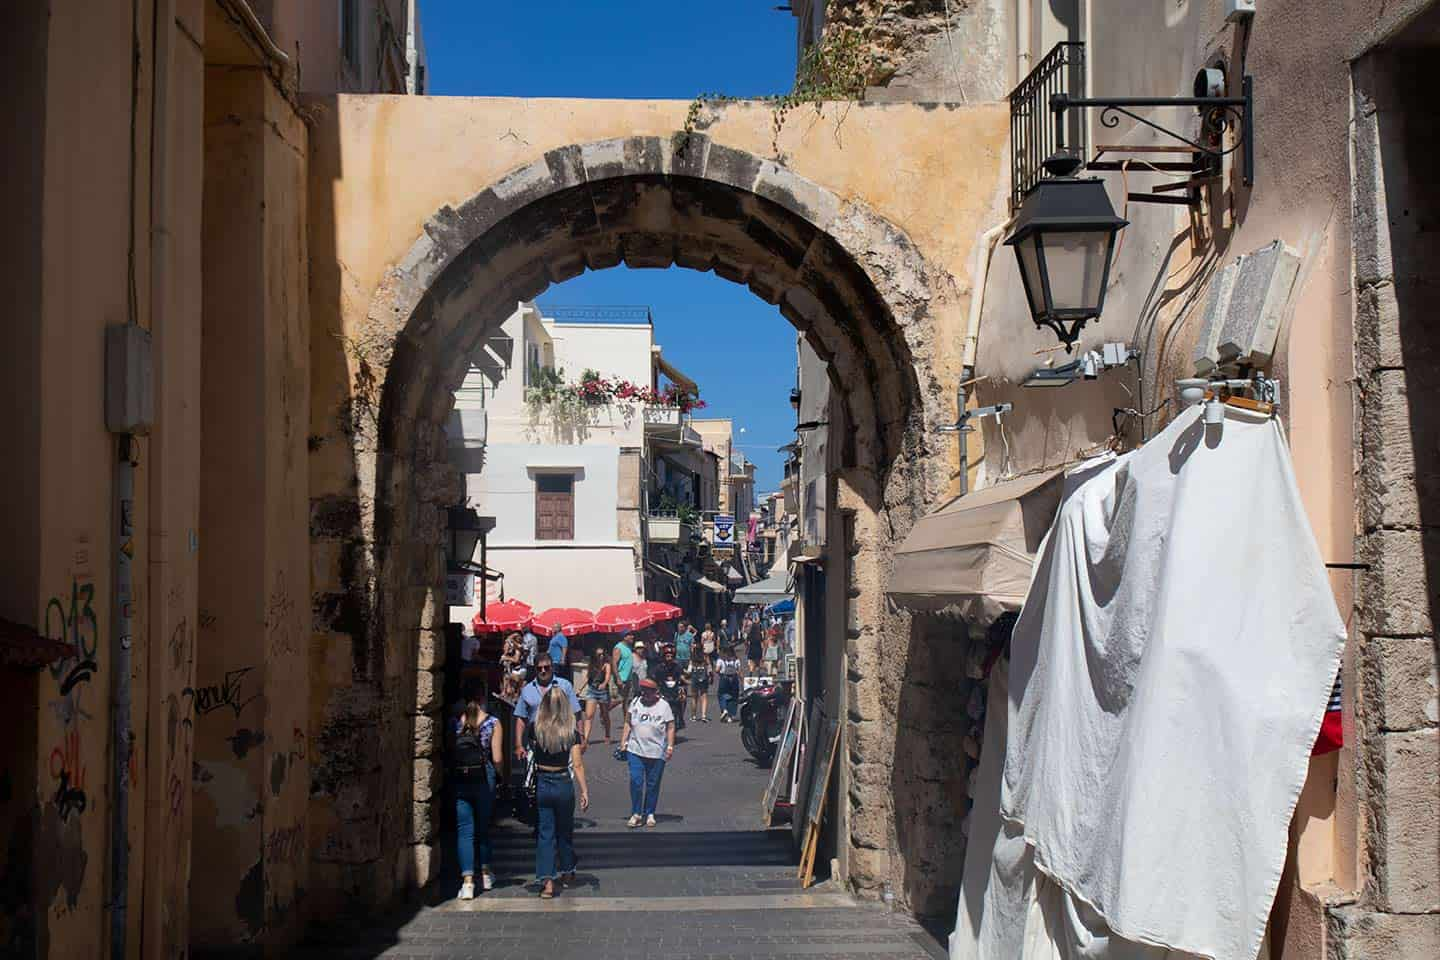 Image of Porta Guora archway in Rethymno old town